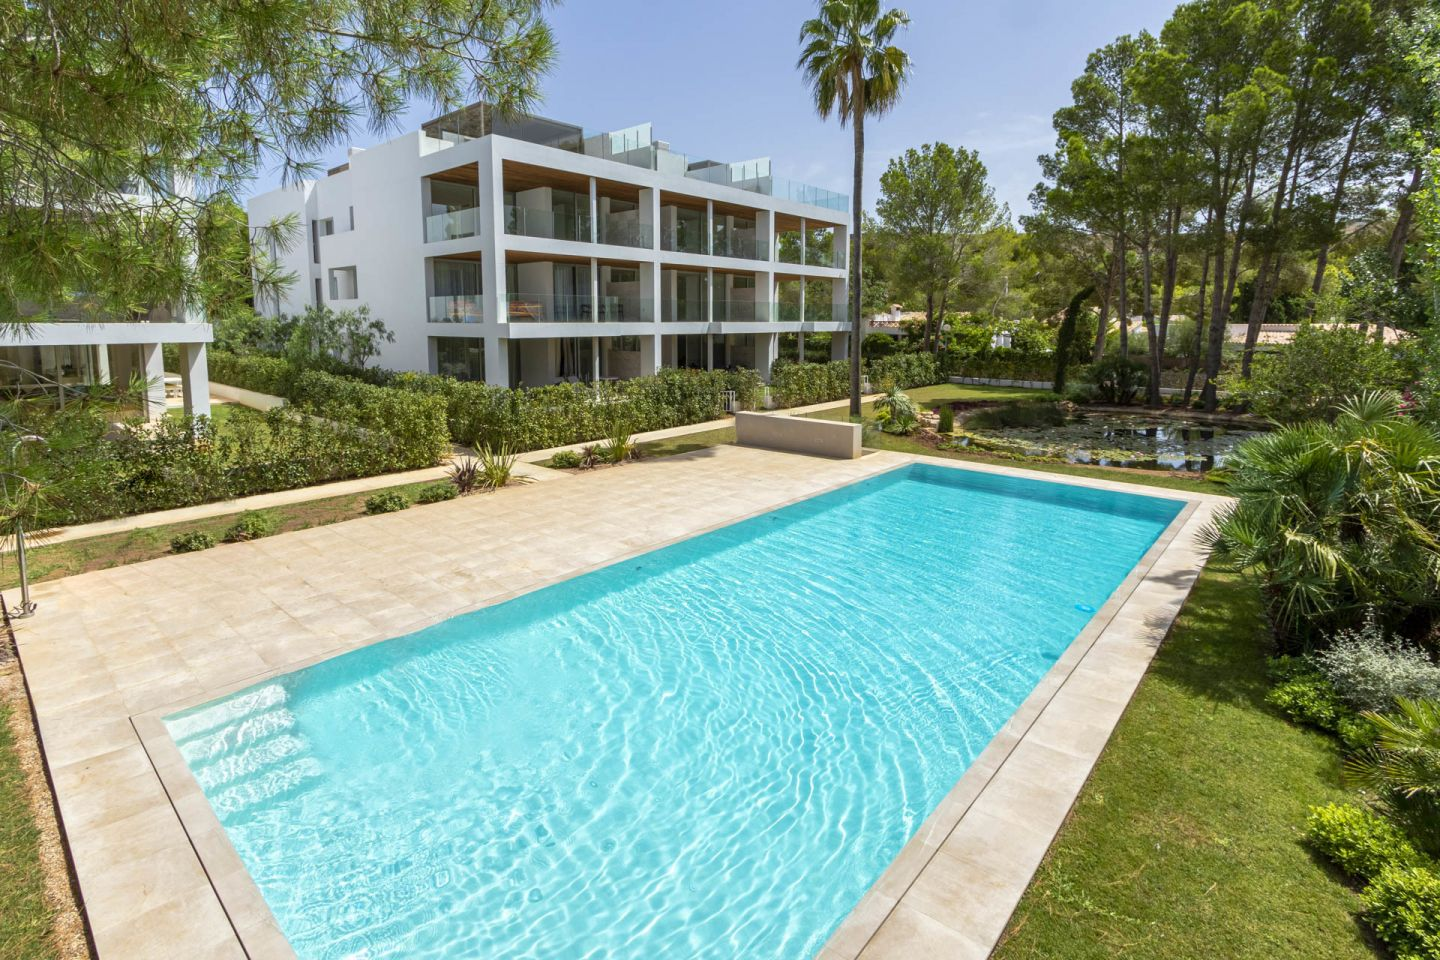 3 Bed Penthouse for sale in PUERTO POLLENSA 2